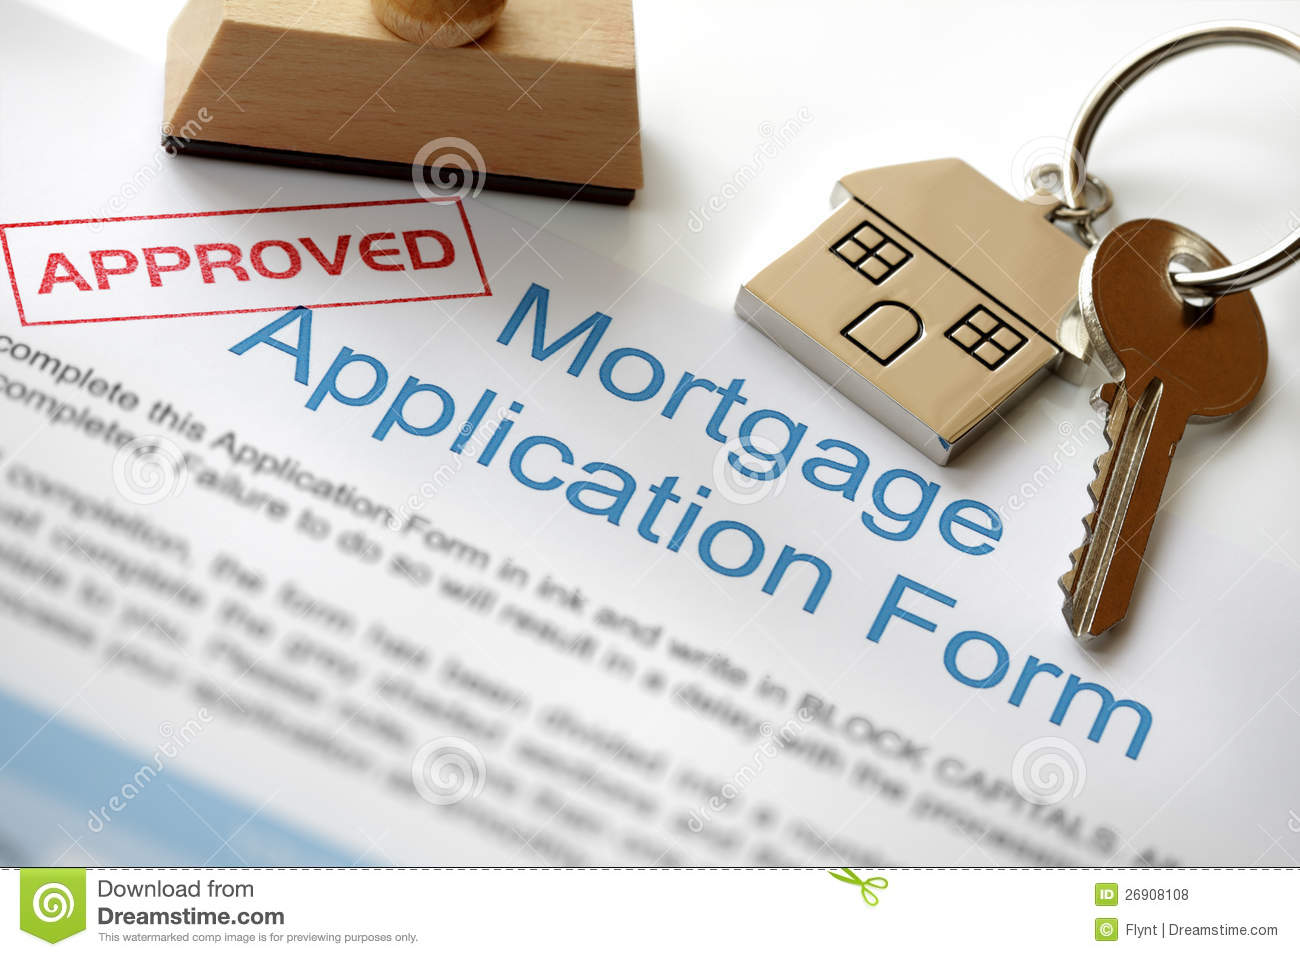 Approved Mortgage Application Royalty Free Stock Photos - Image: 26908108